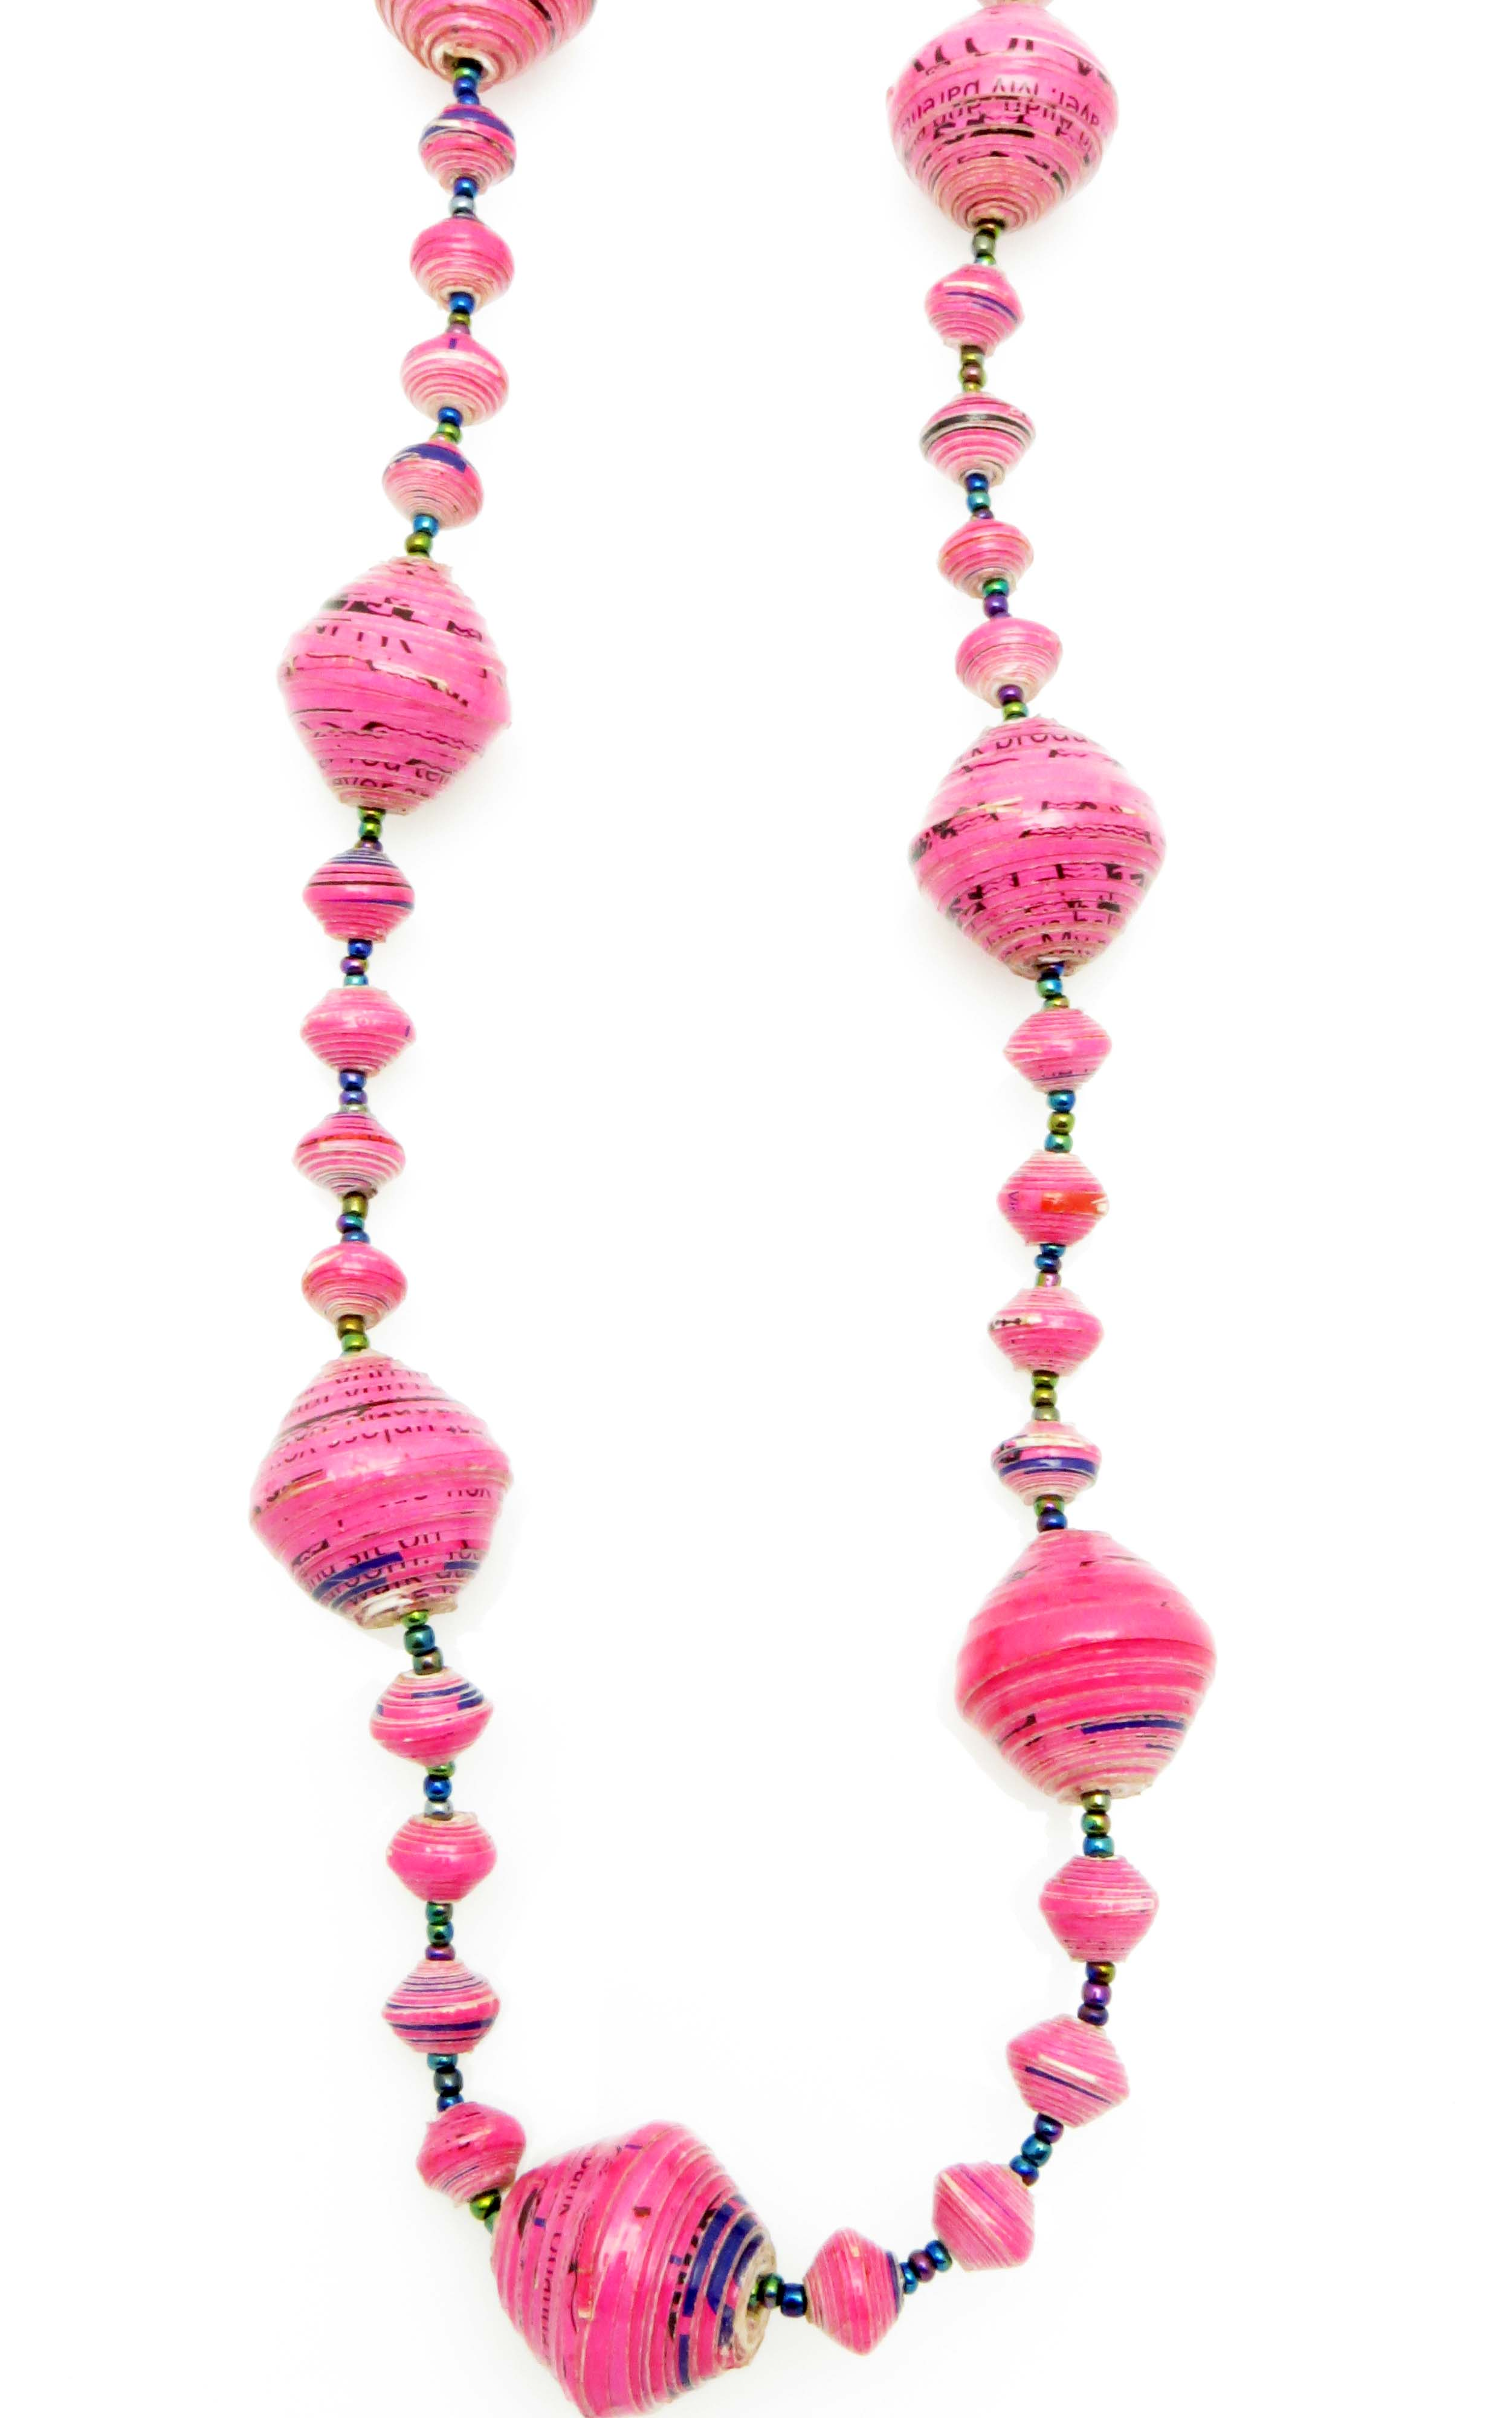 Hot pink gigantic bead necklace